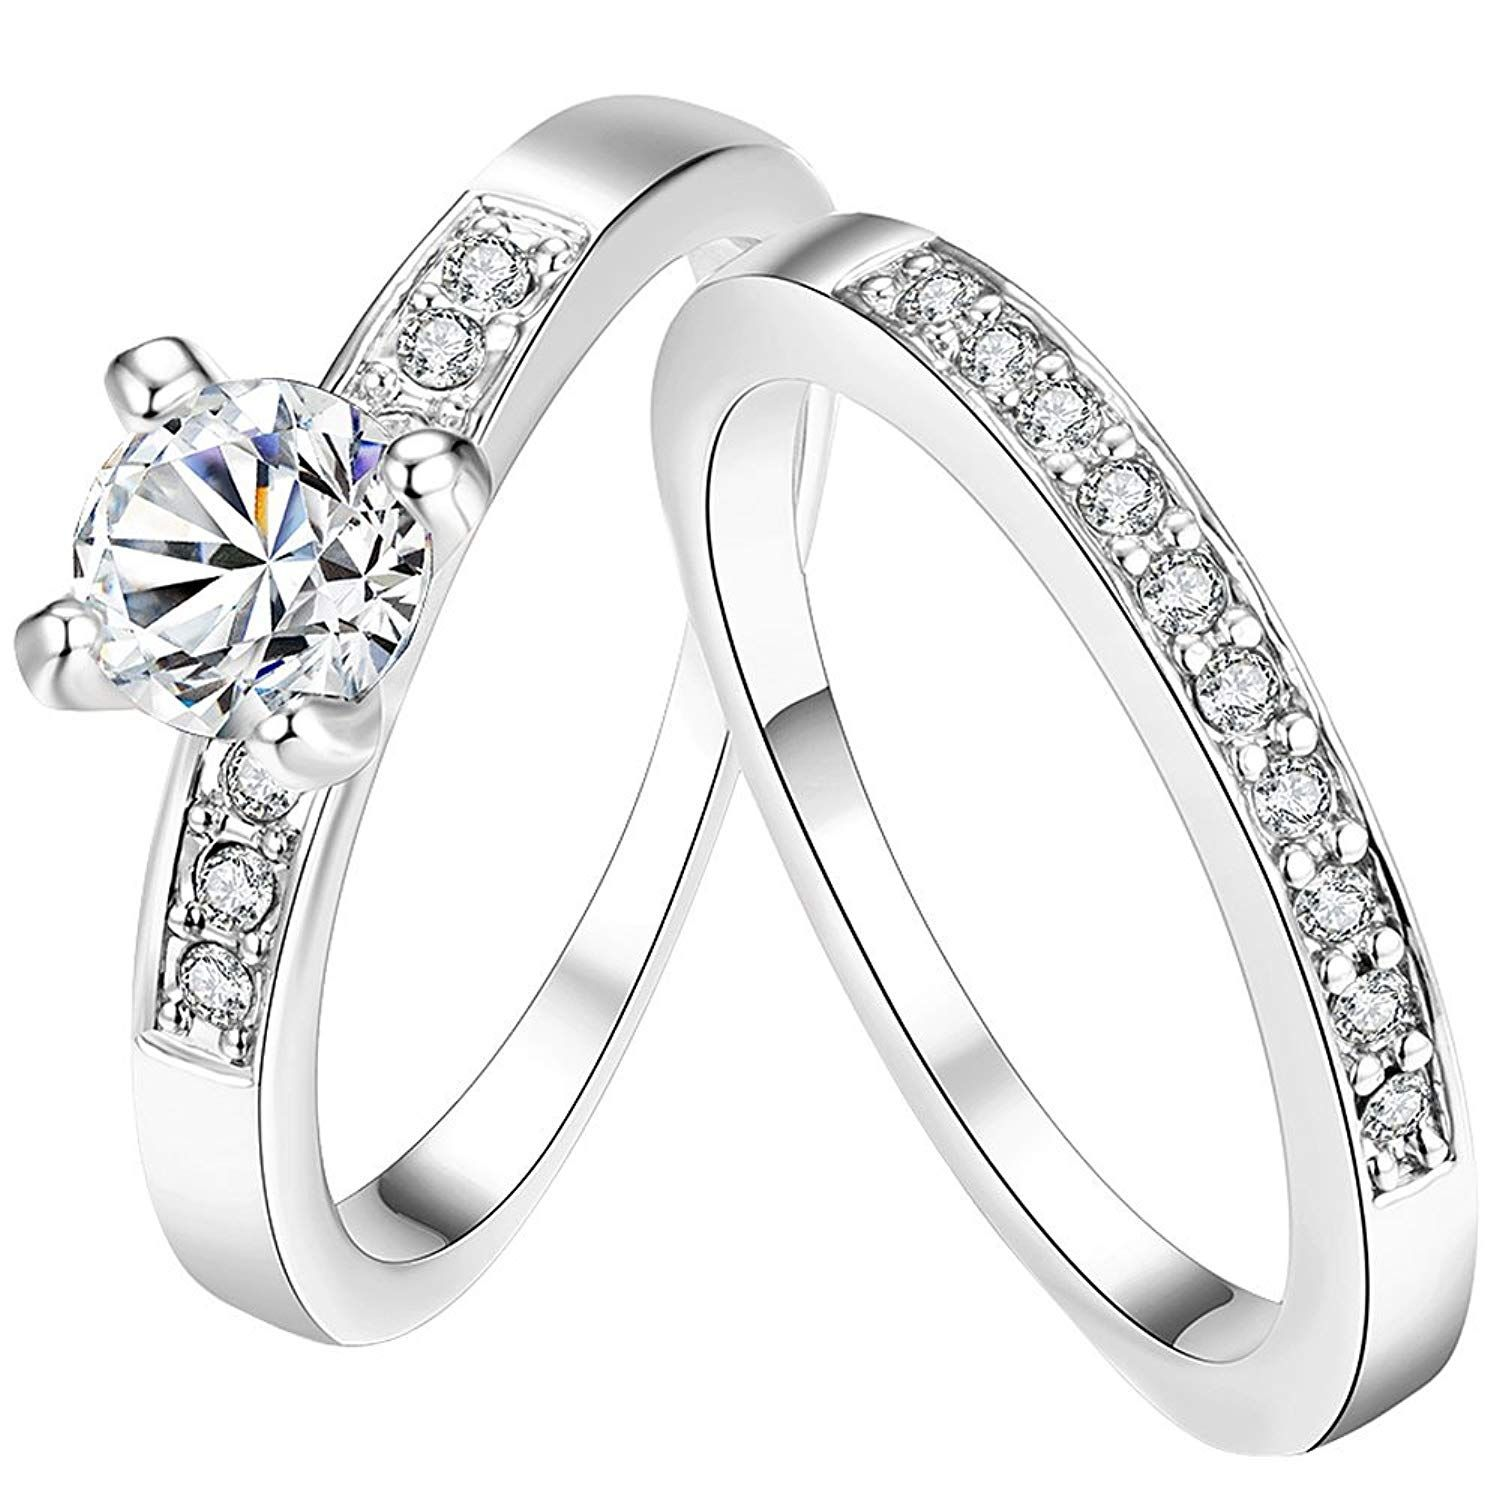 Awly Women S Pretty 18k White Gold Plated Solitaire Cz Crystal